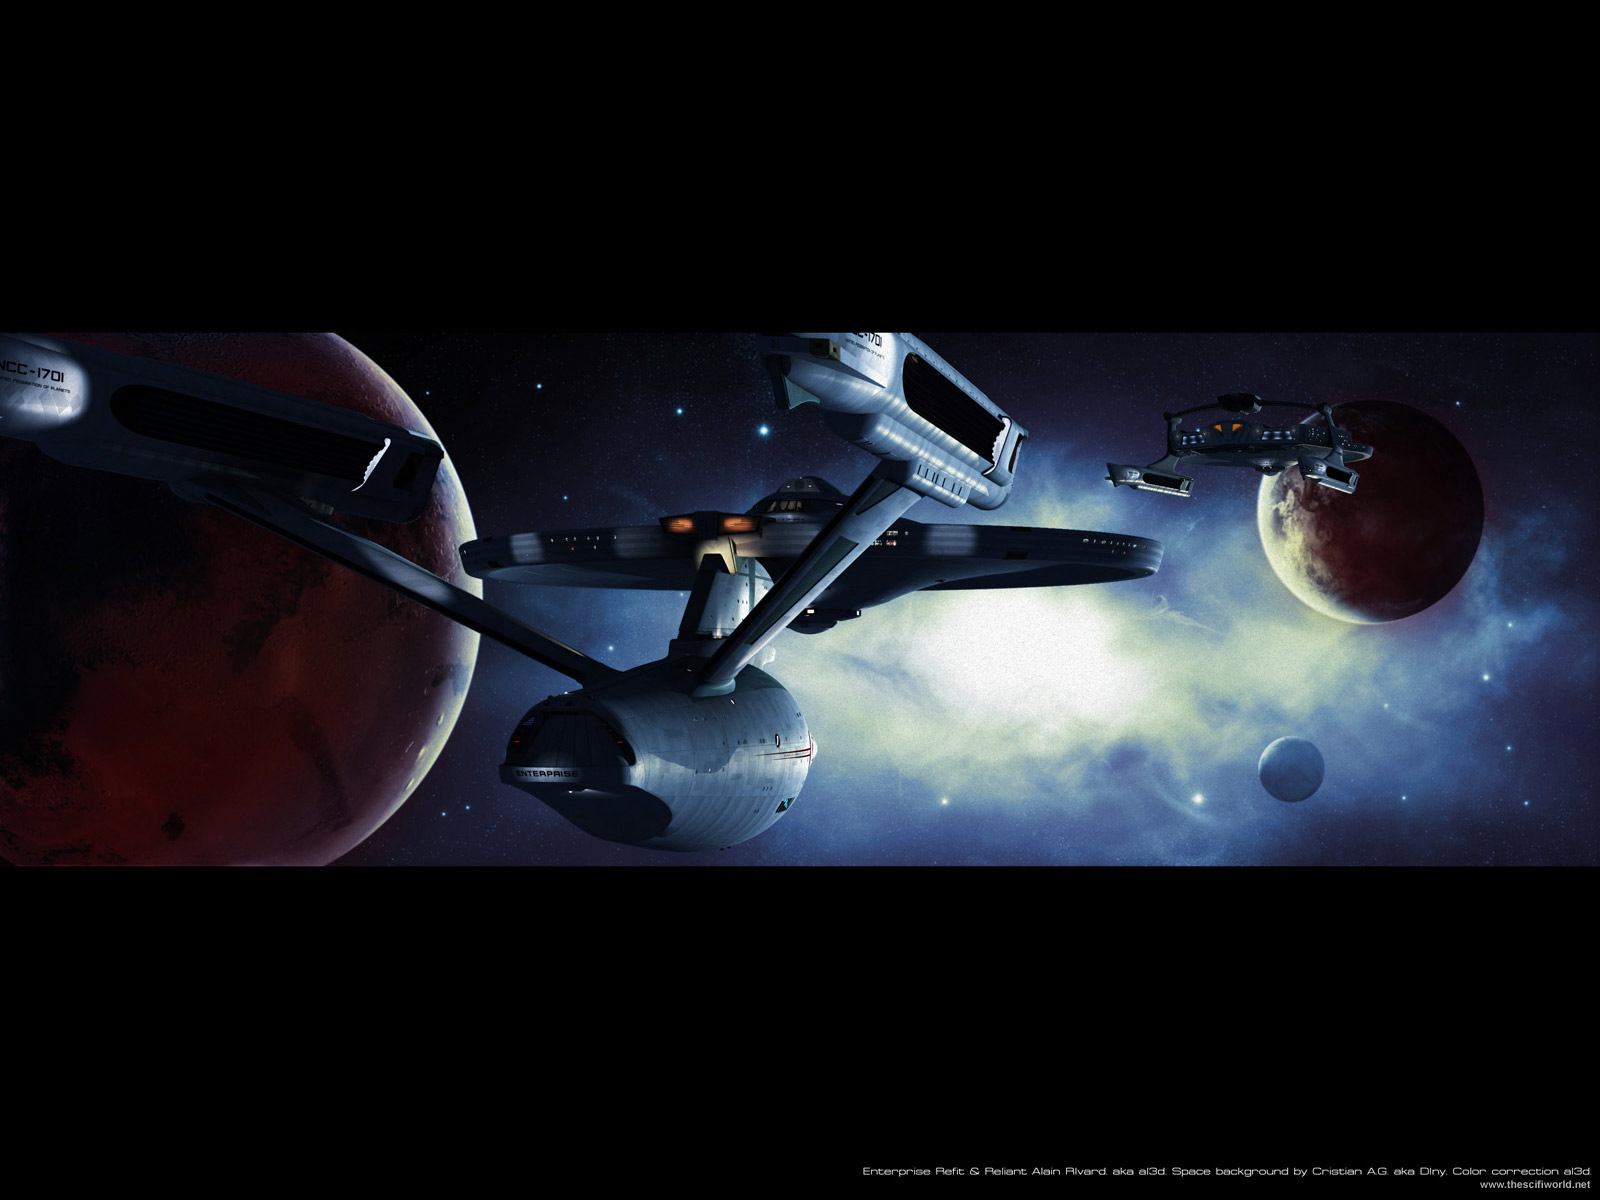 Star Trek wallpapers wallpaper images TV shows sci fi pictures scifi 1600x1200